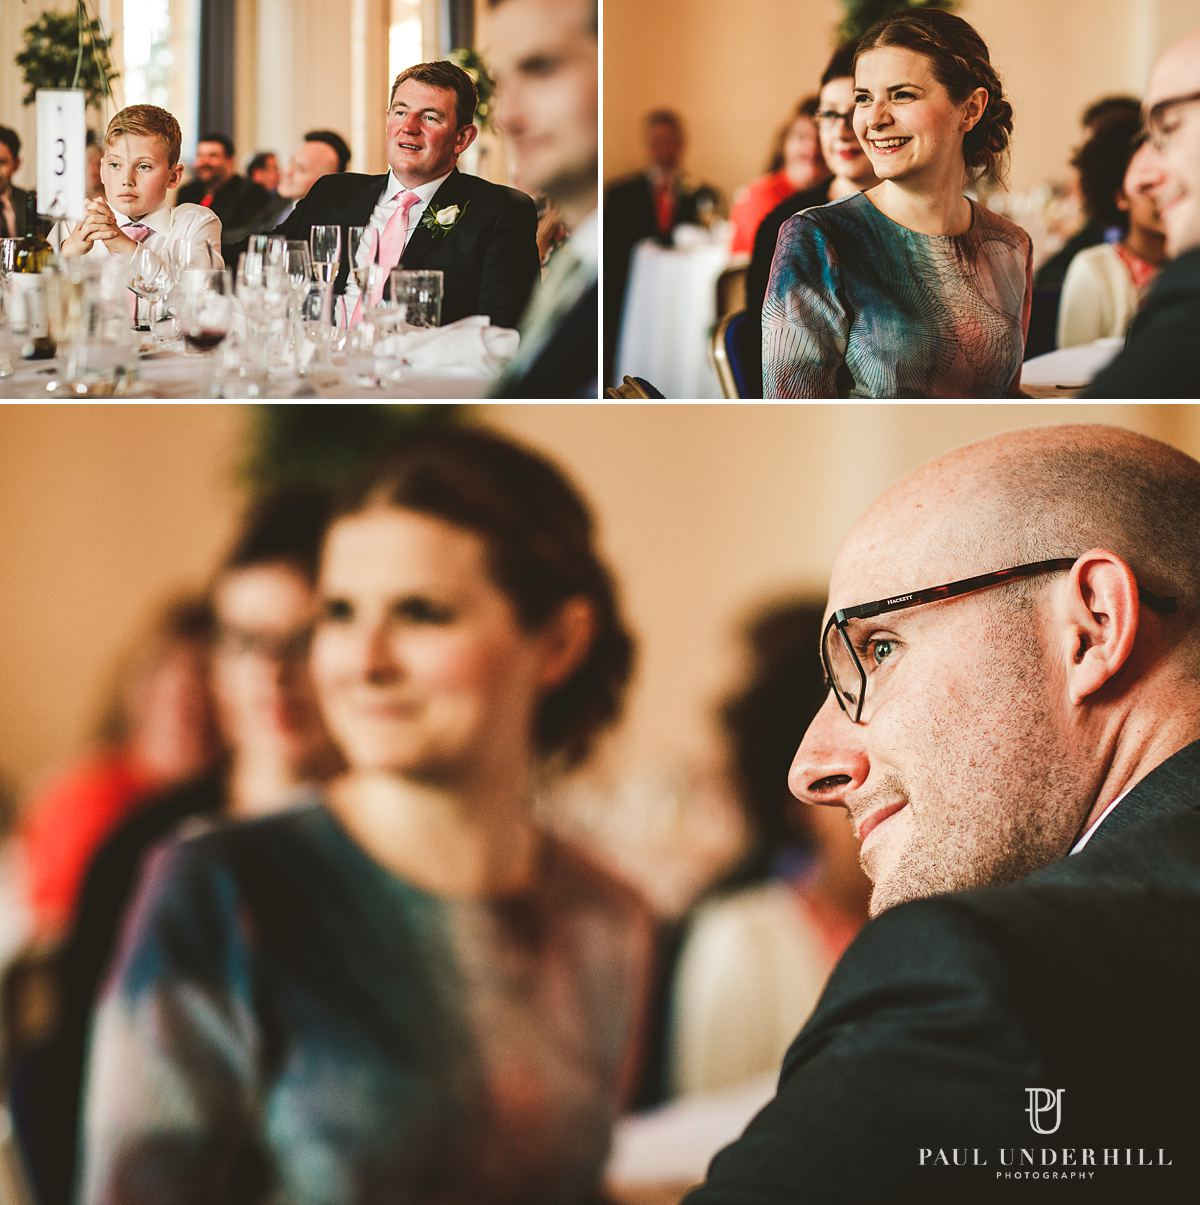 Documentary photography wedding speeches